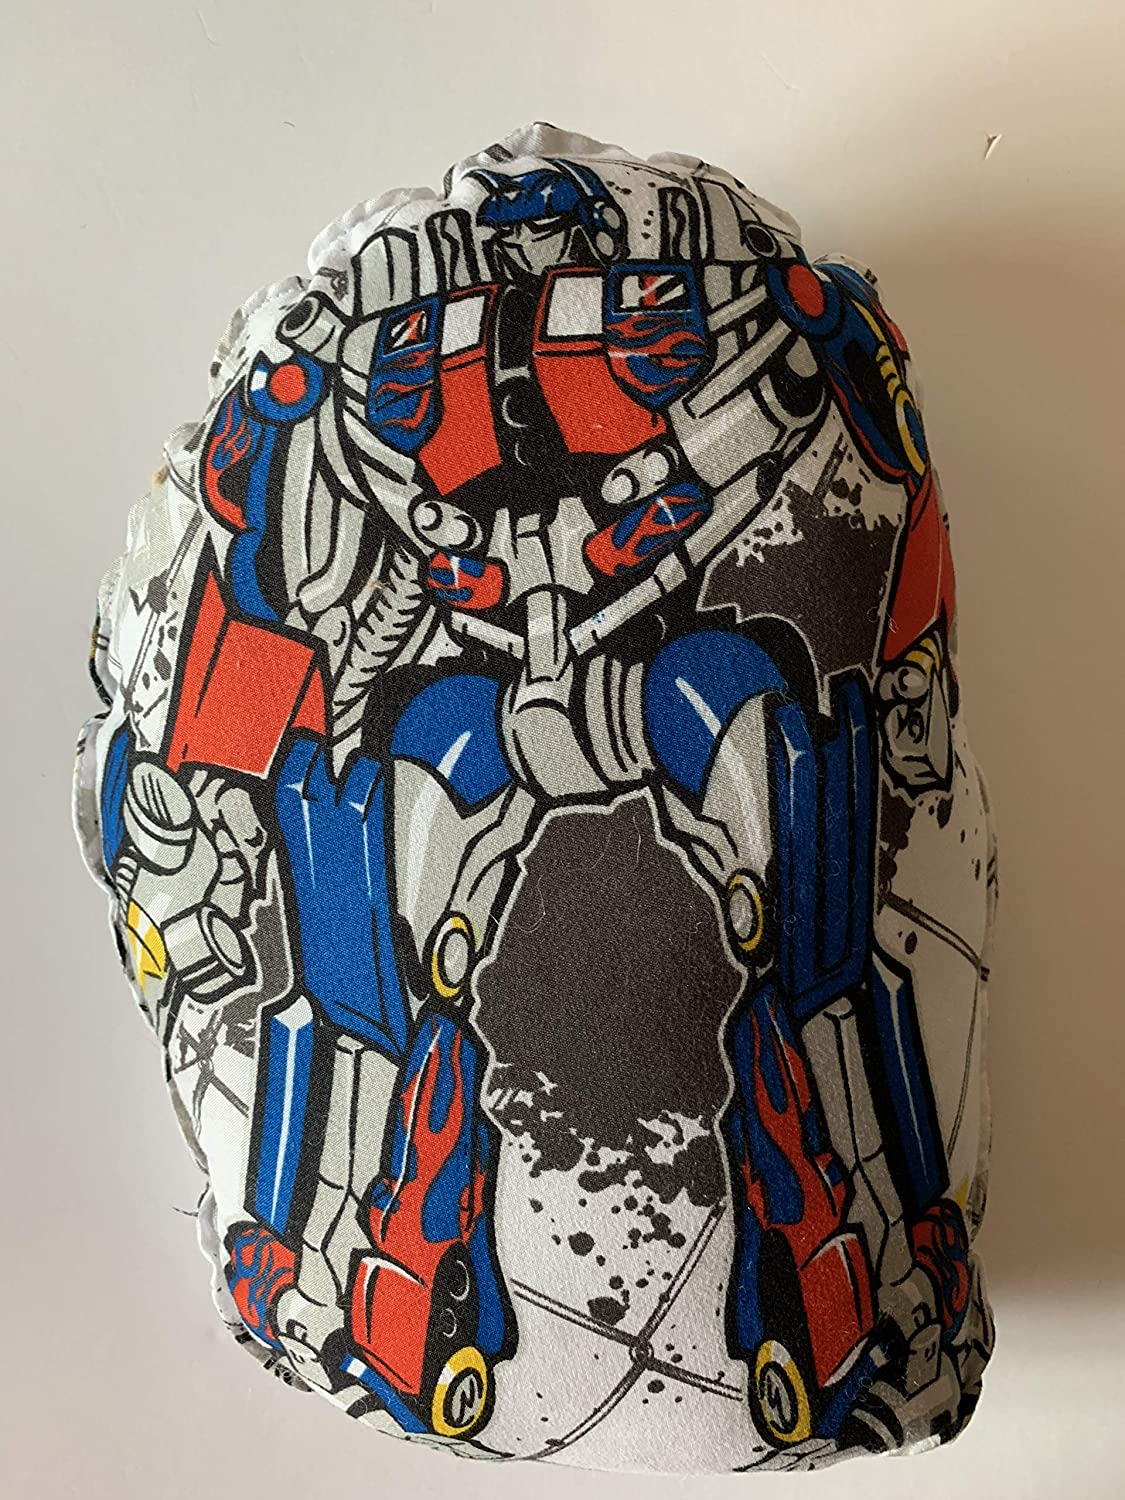 Bumblebee Optimus Prime character pillows washable weighted pillows 2 lbs Transformers Weighted Childrens pillow